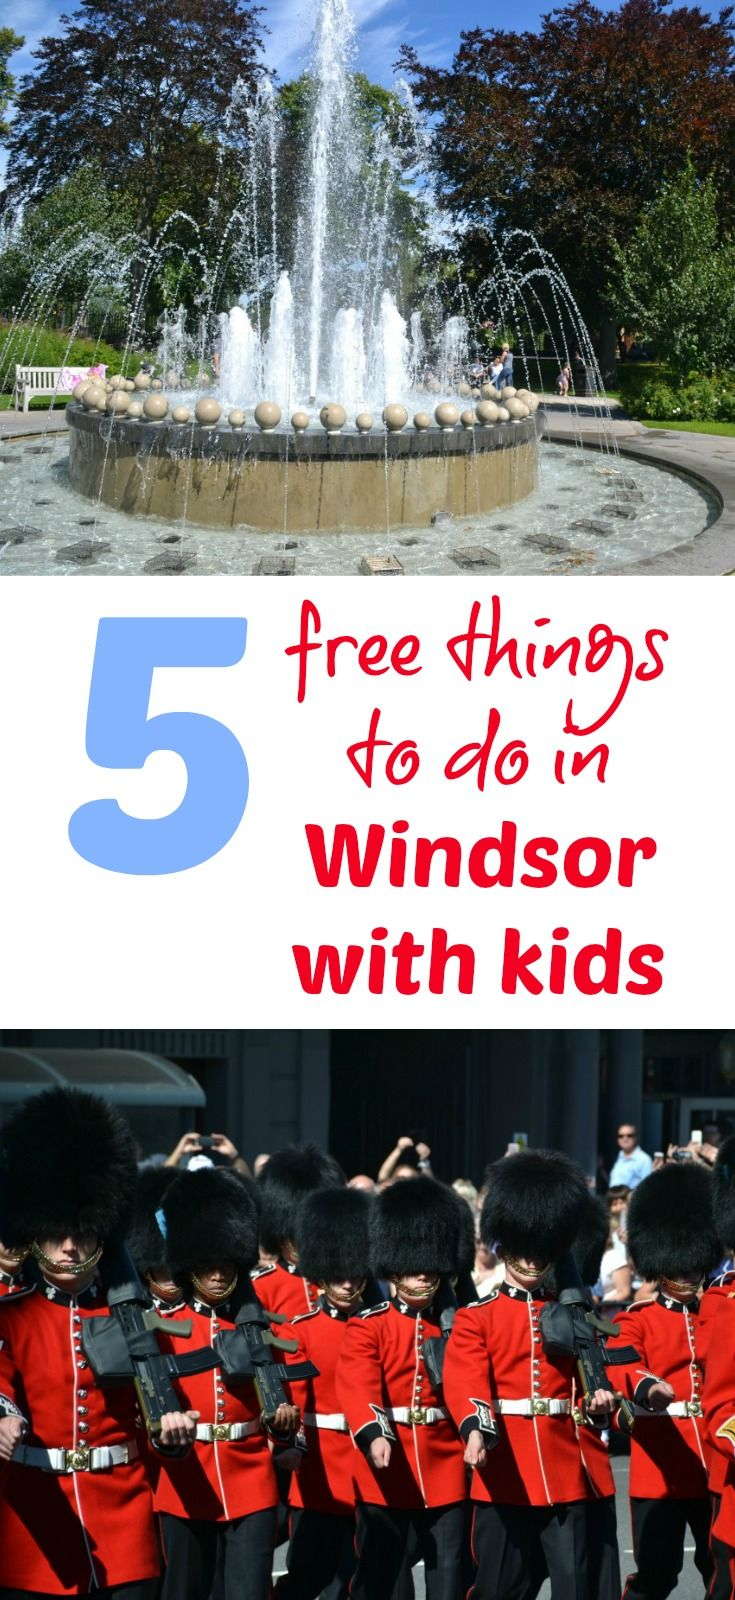 Fans of the British Royal Family will love a day out in Windsor, but it needed cost the crown jewels. Here's five free things to do in Windsor with kids and where to splash the cash if you're feeling flush